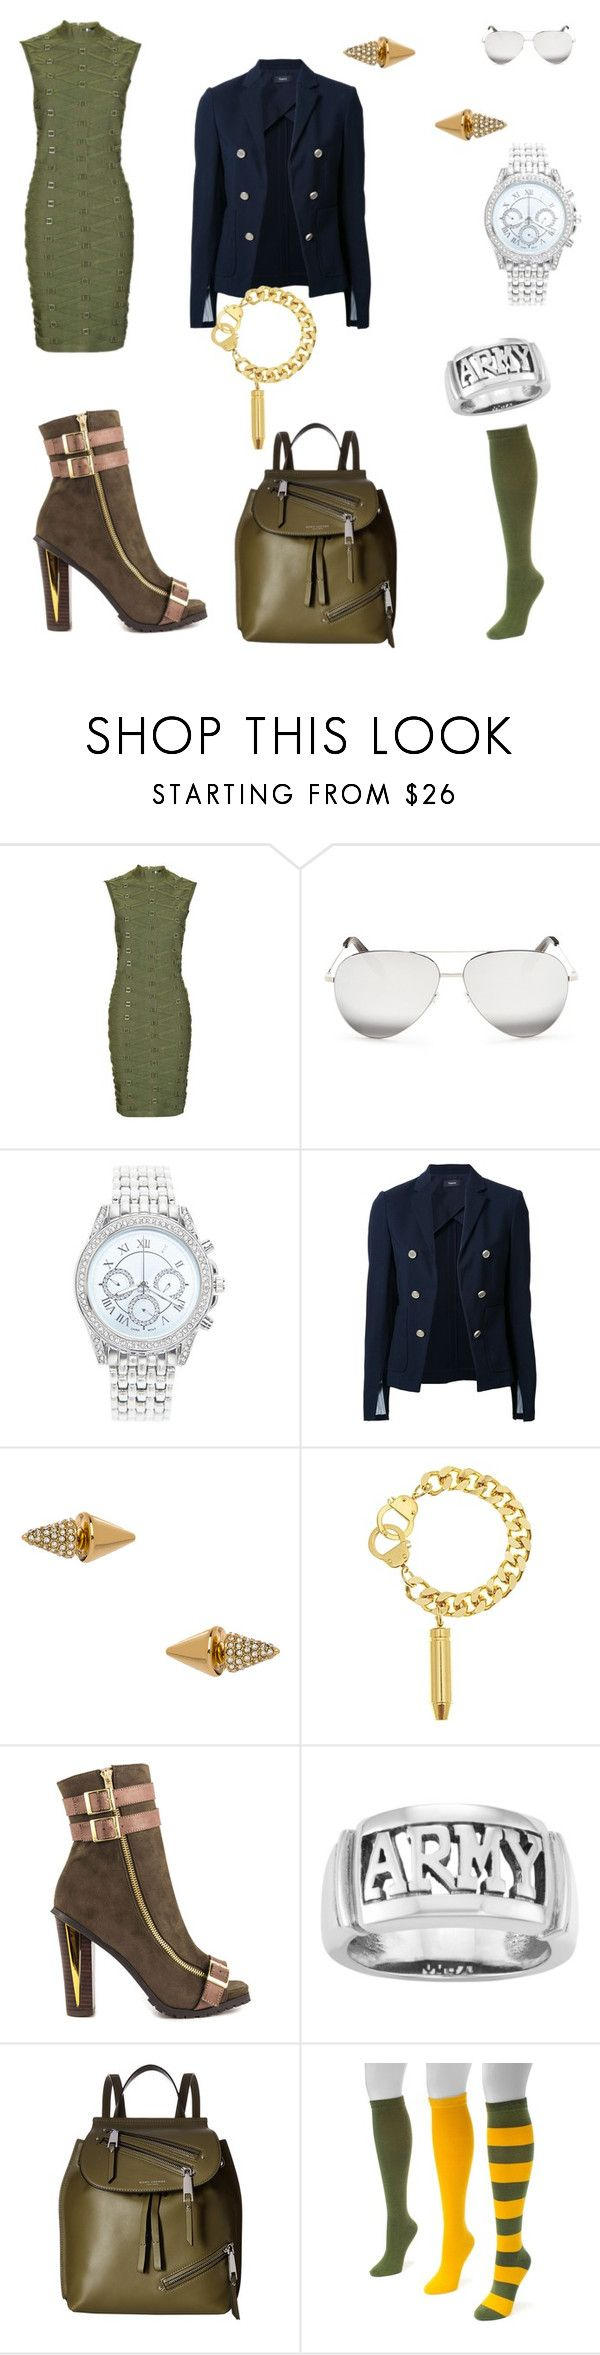 """""""Military style"""" by polina-saleychuk on Polyvore featuring мода, Topshop, Victoria Beckham, Lane Bryant, Theory, Blu Bijoux, Eklexic, Luichiny, Territory и Marc Jacobs"""